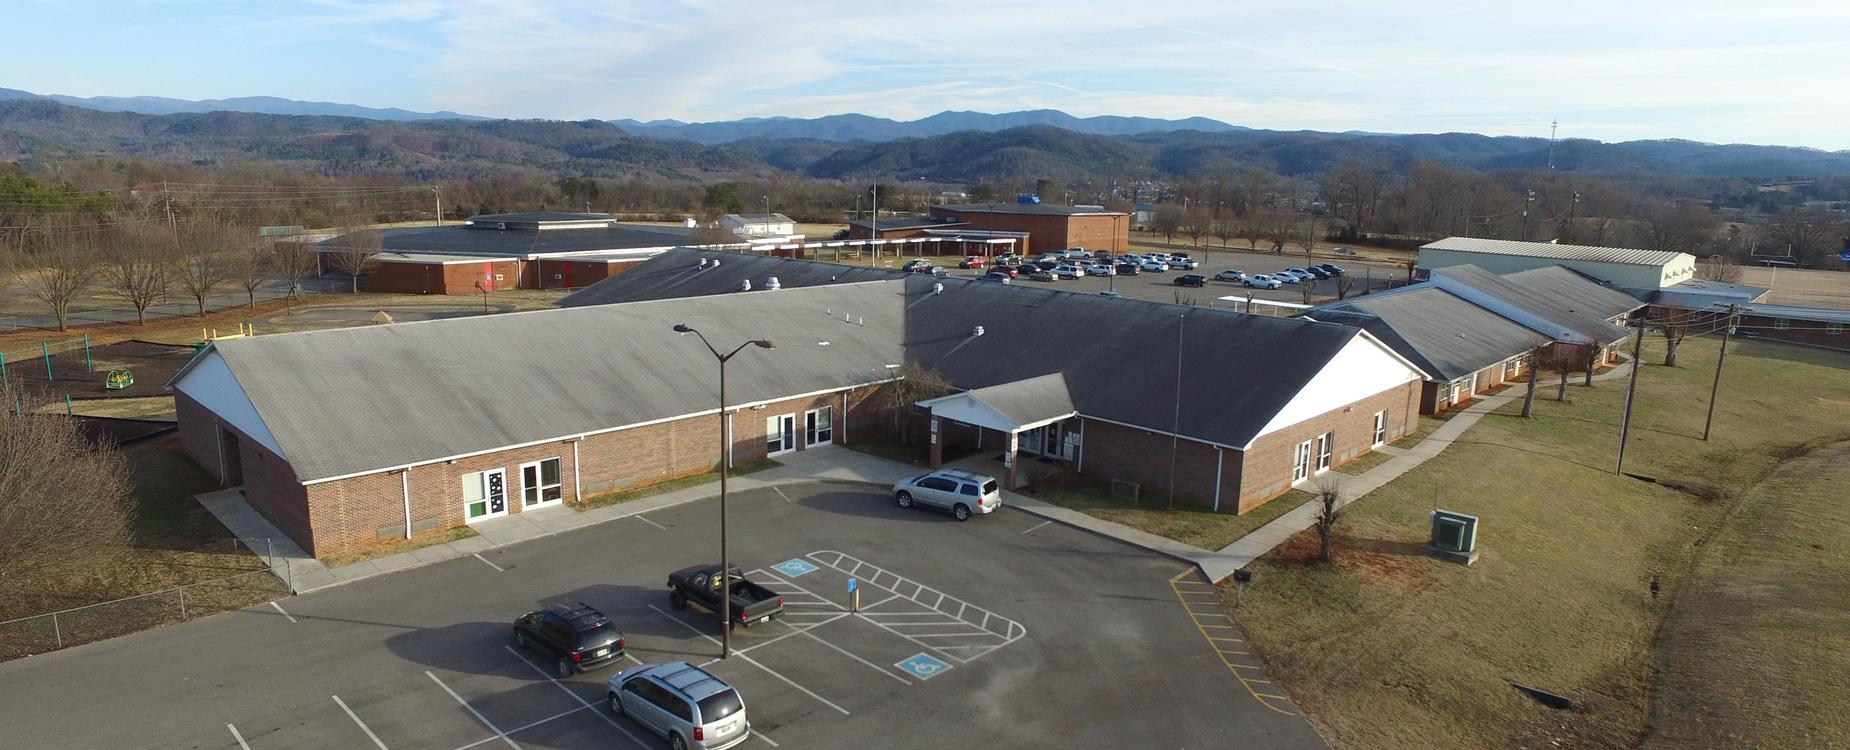 Aerial view of TPES